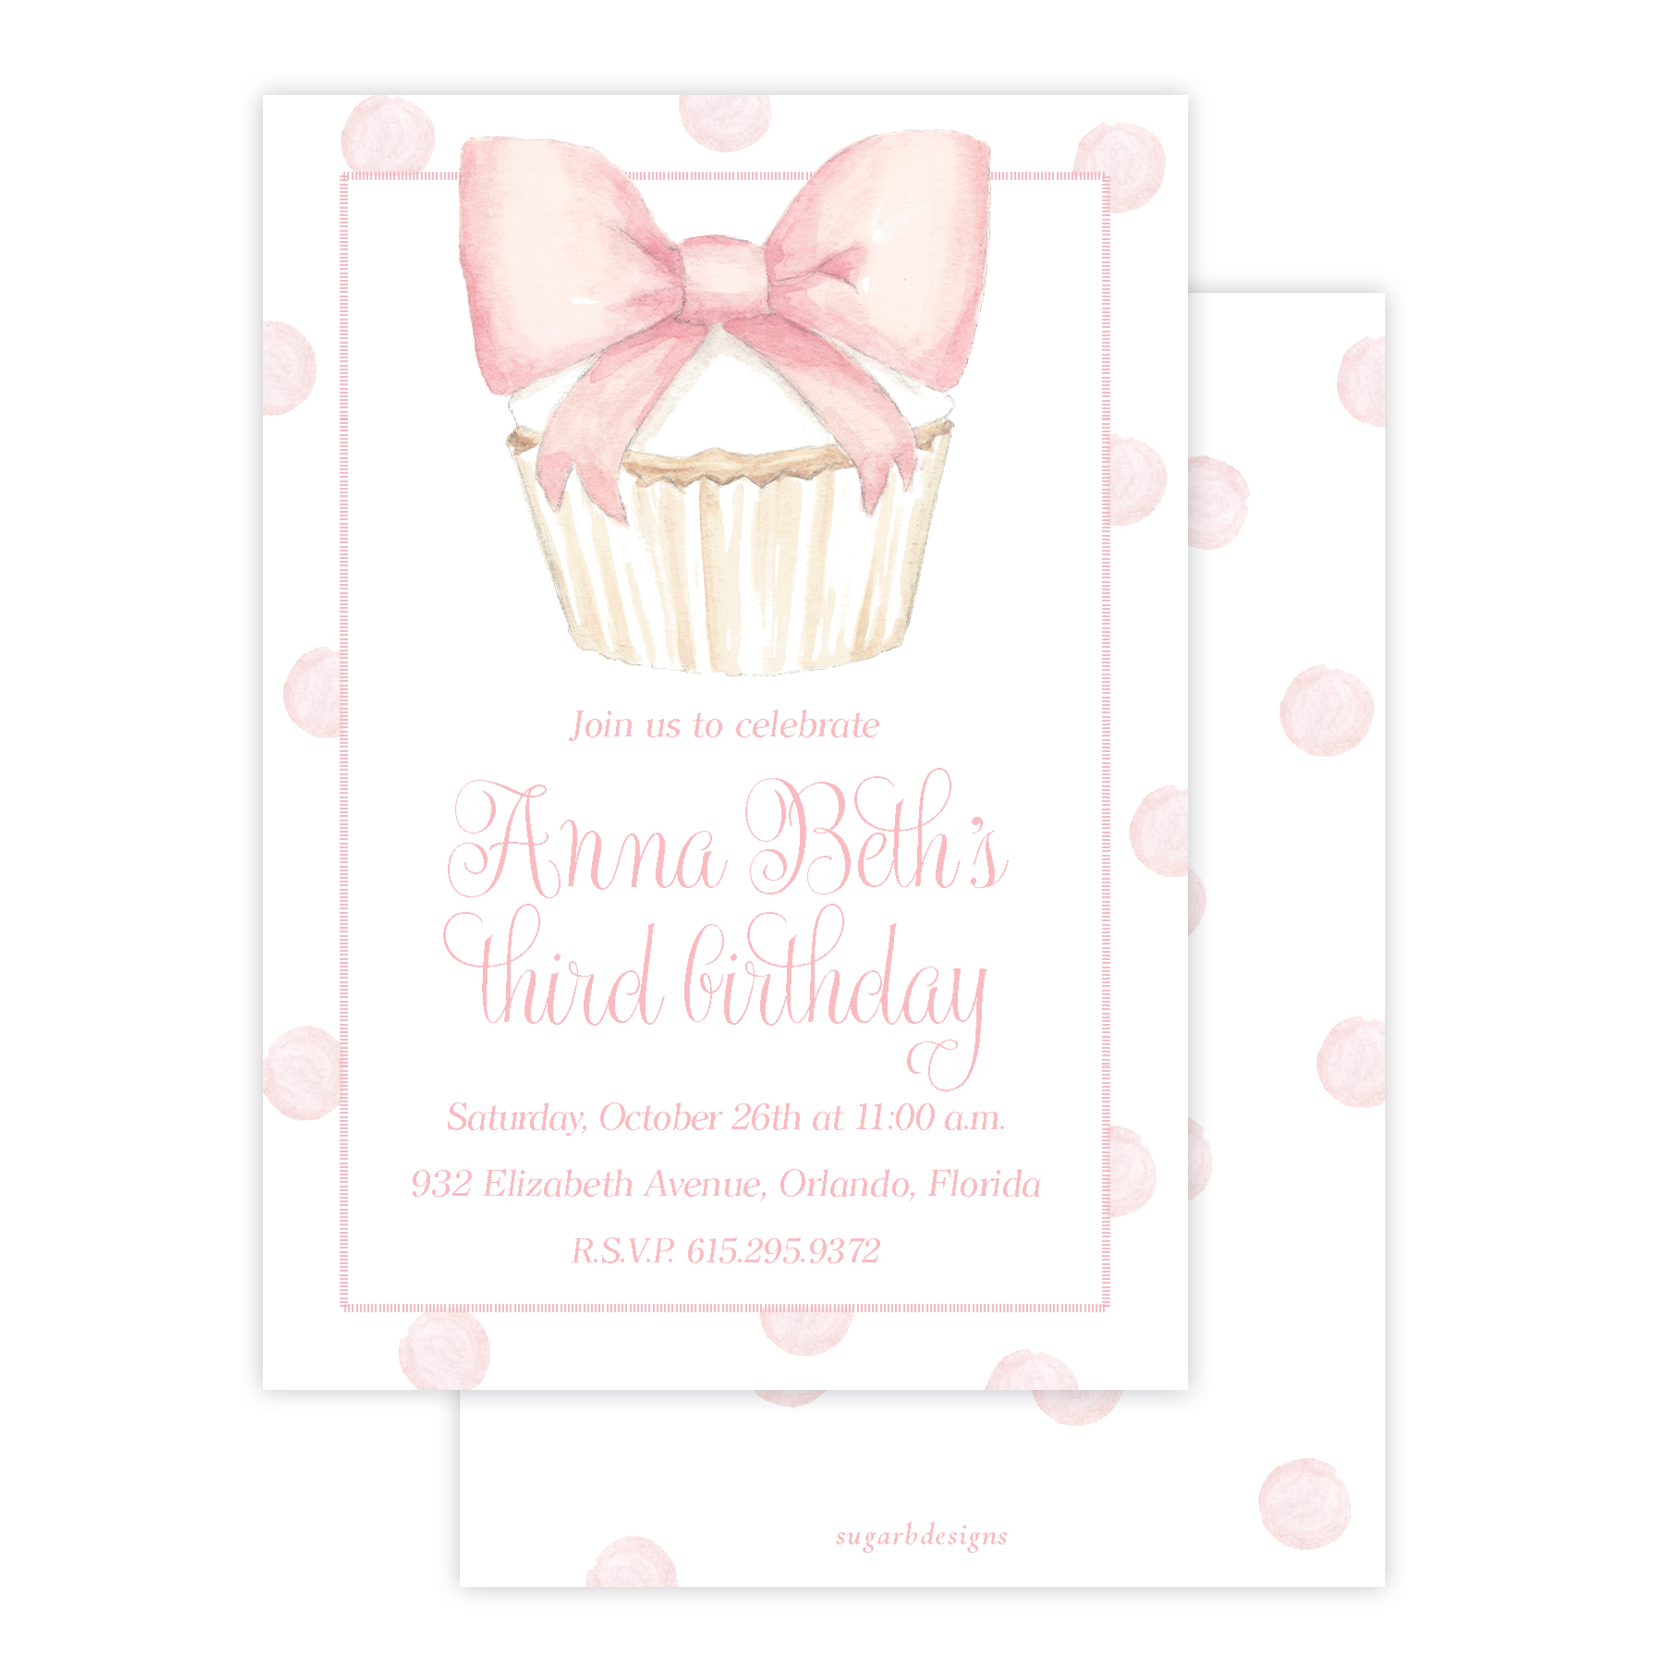 Icing Bow Cupcake Birthday Invitation by Sugar B Designs